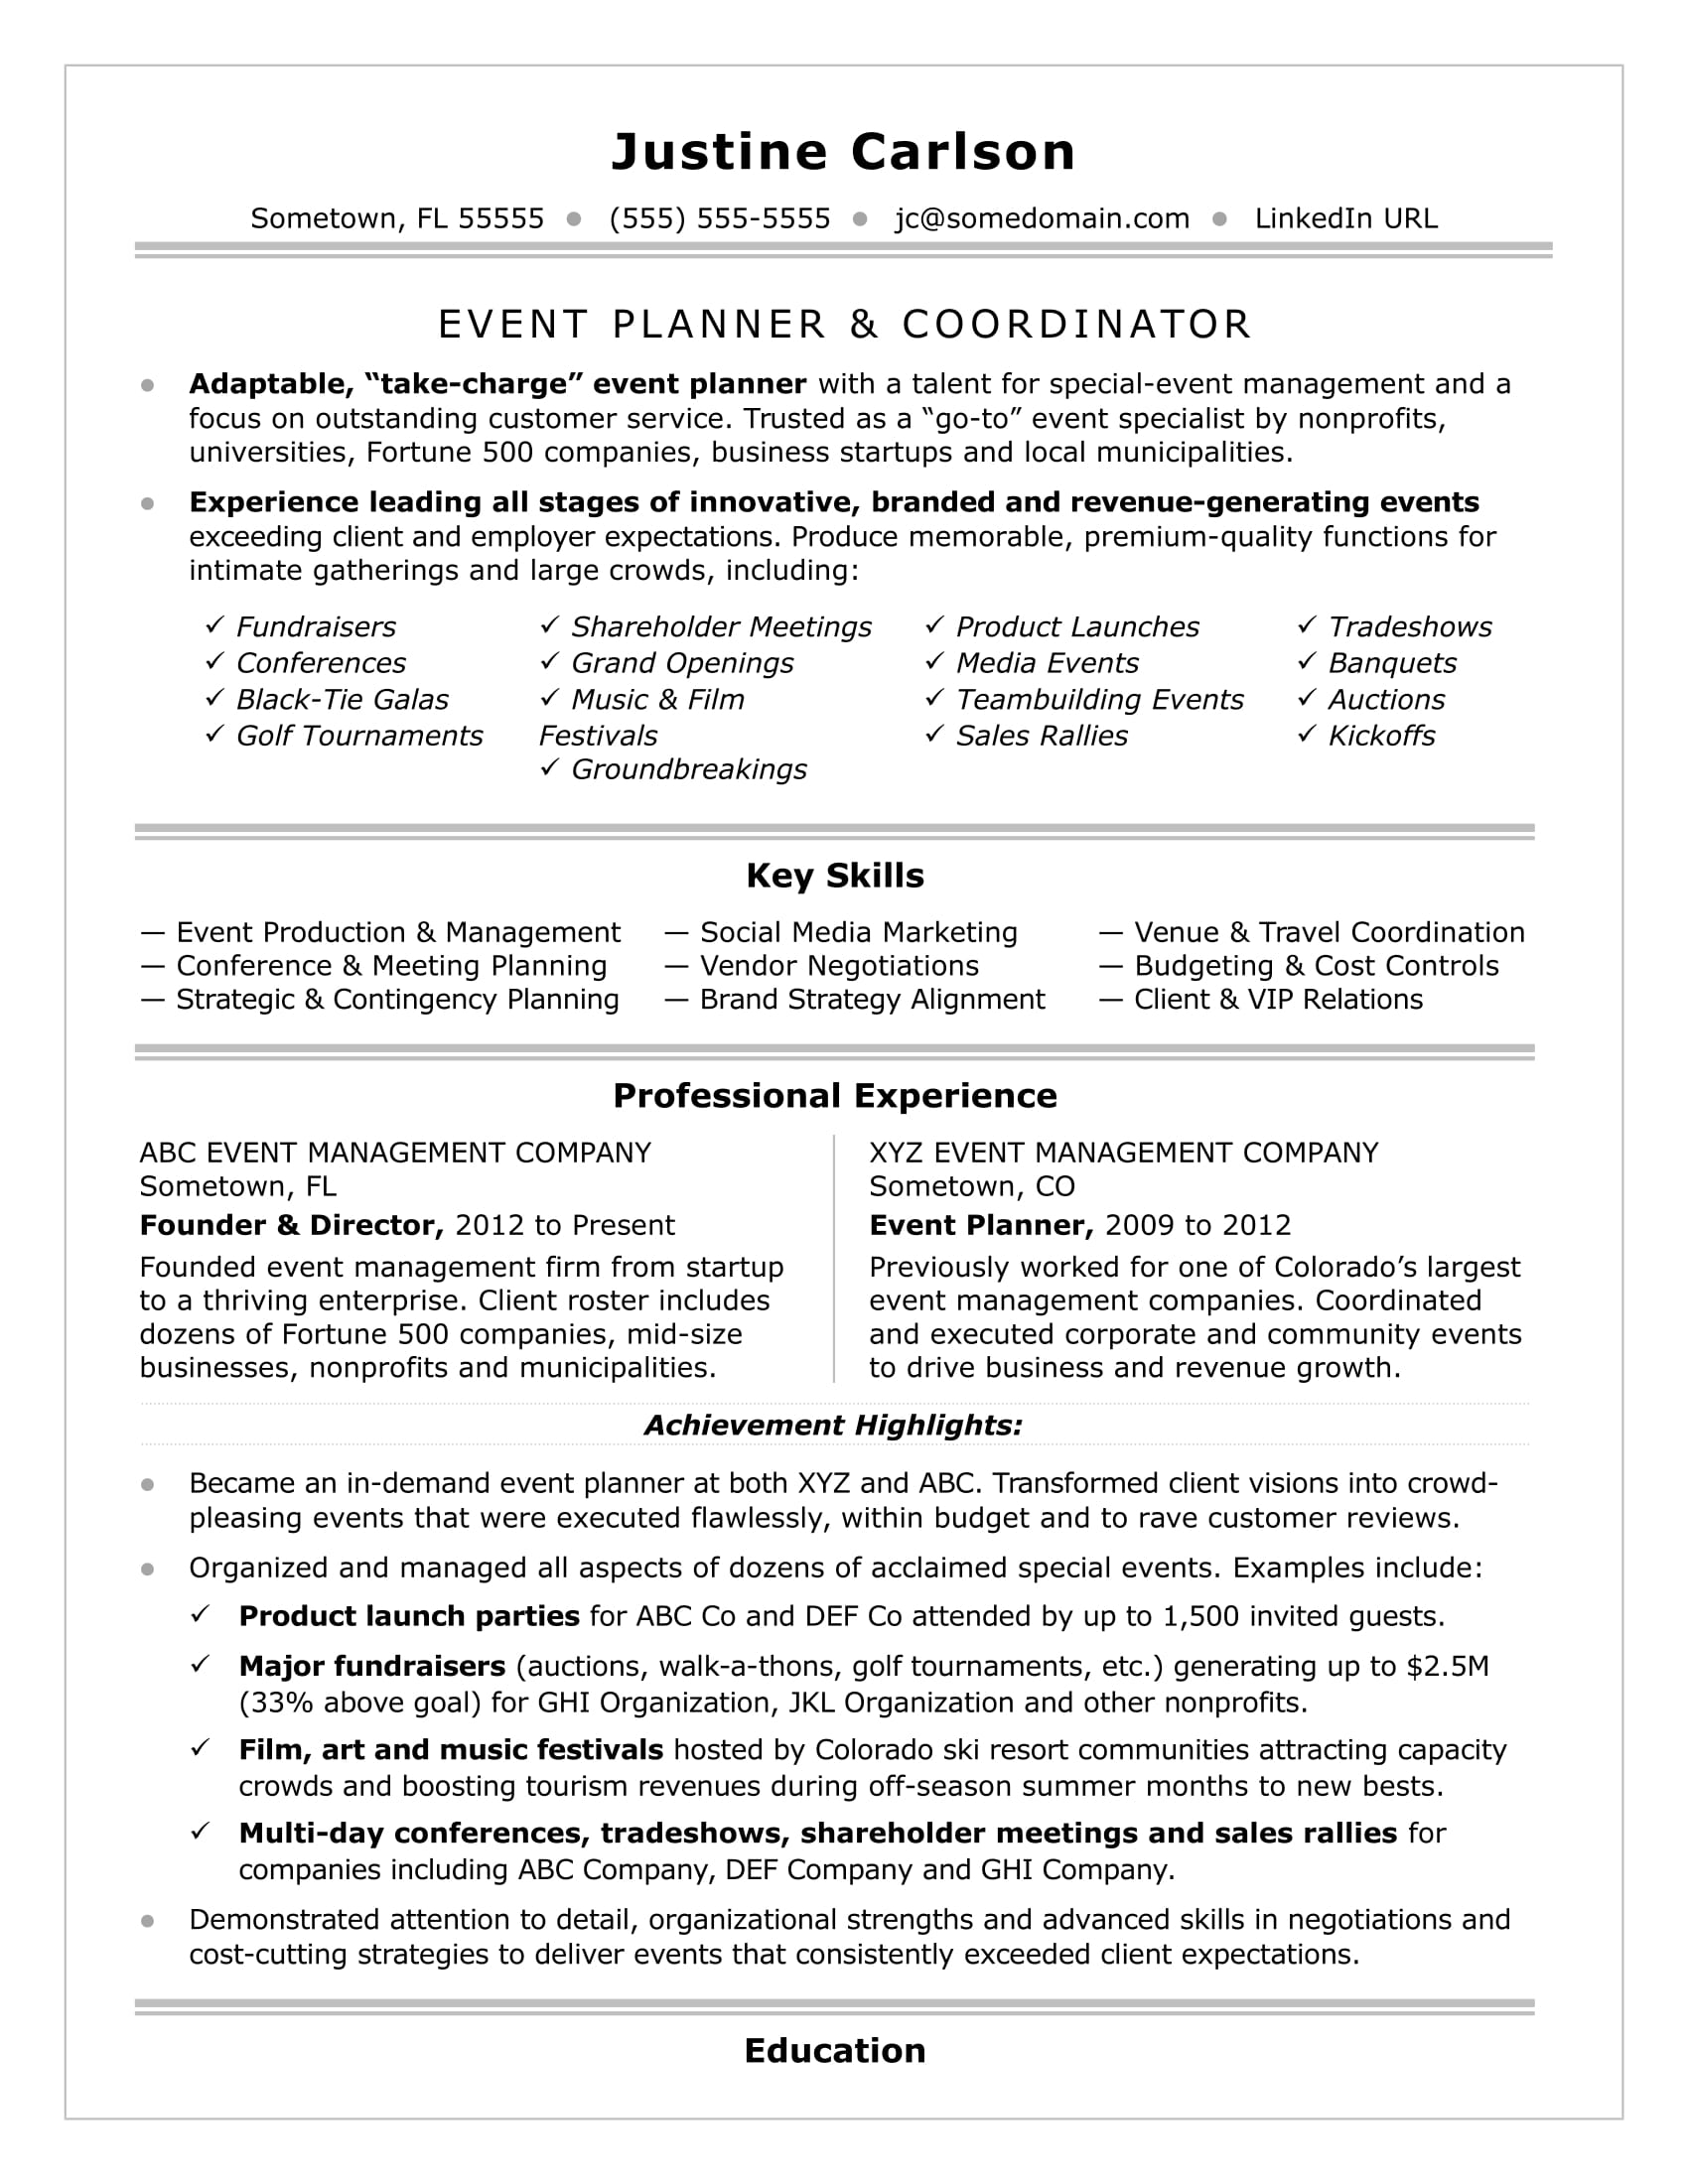 Event Coordinator Resume Sample  Social Media Resume Sample